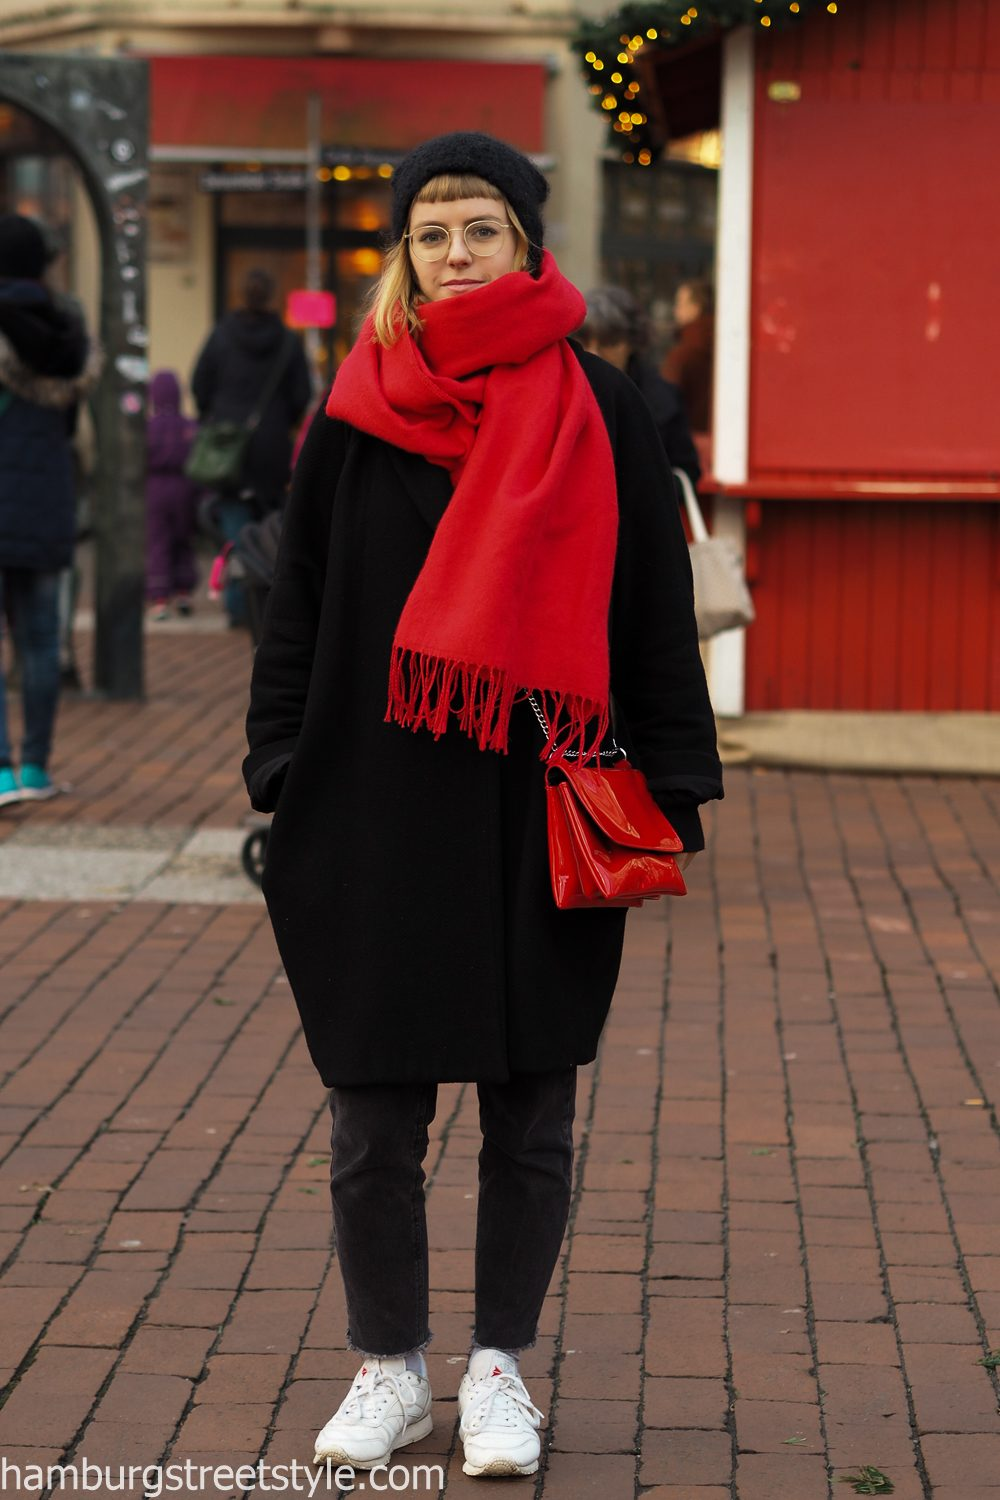 Hamburg Streetstyle Winter